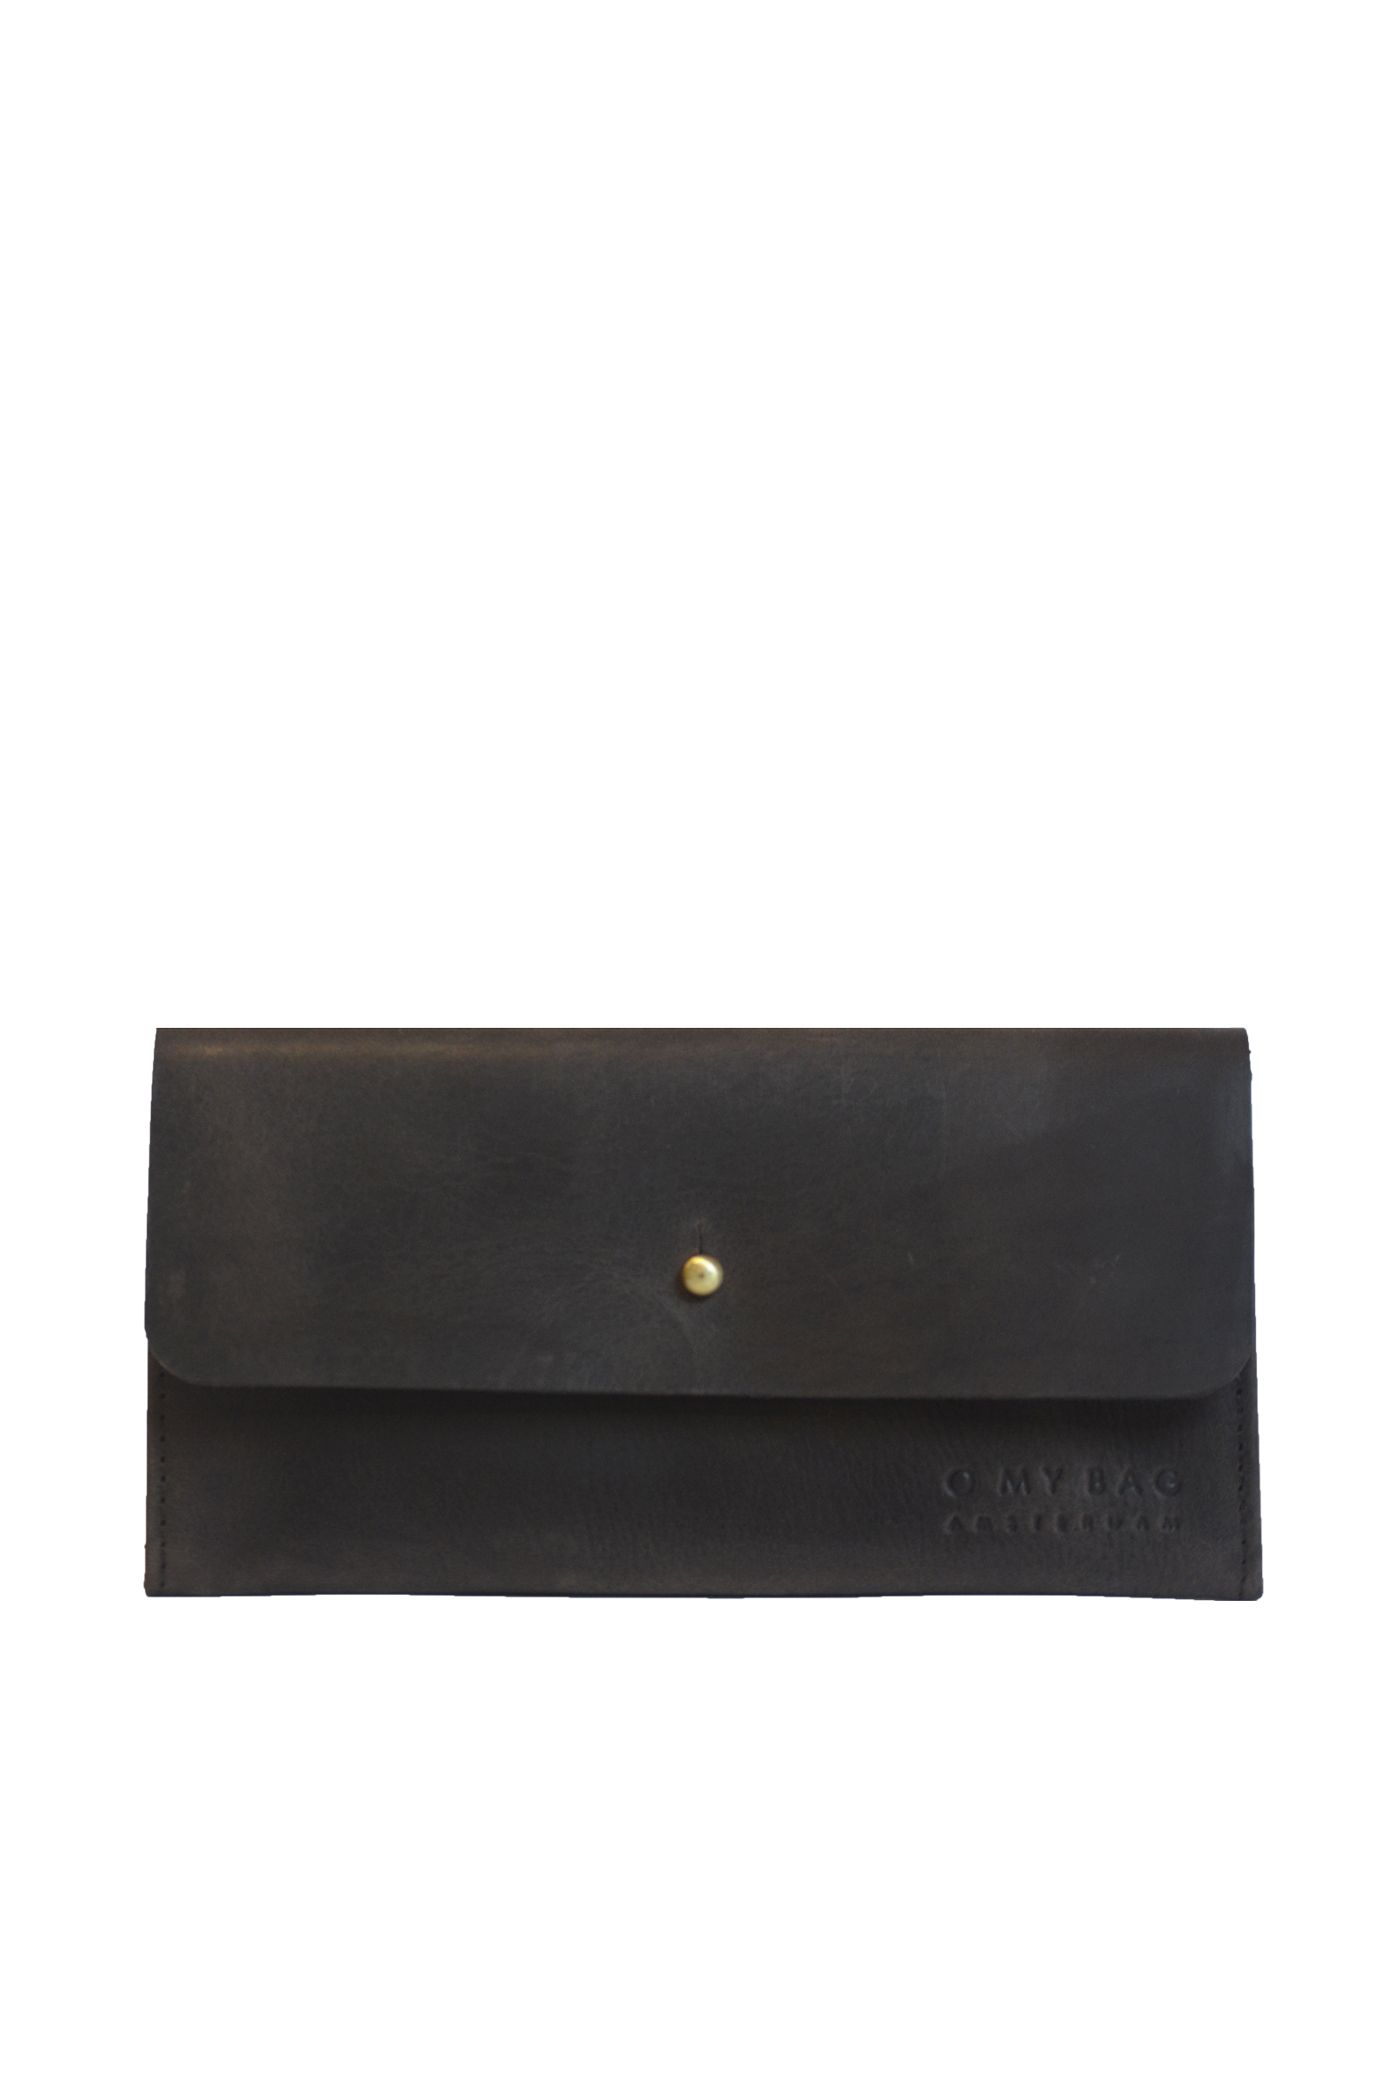 Pixie's Pouch, a very pretty wallet with enough space for all your credit cards and cash! O My Bag http://www.omybag.nl/shop/all-2/pixies-pouch-eco-dark-brown/